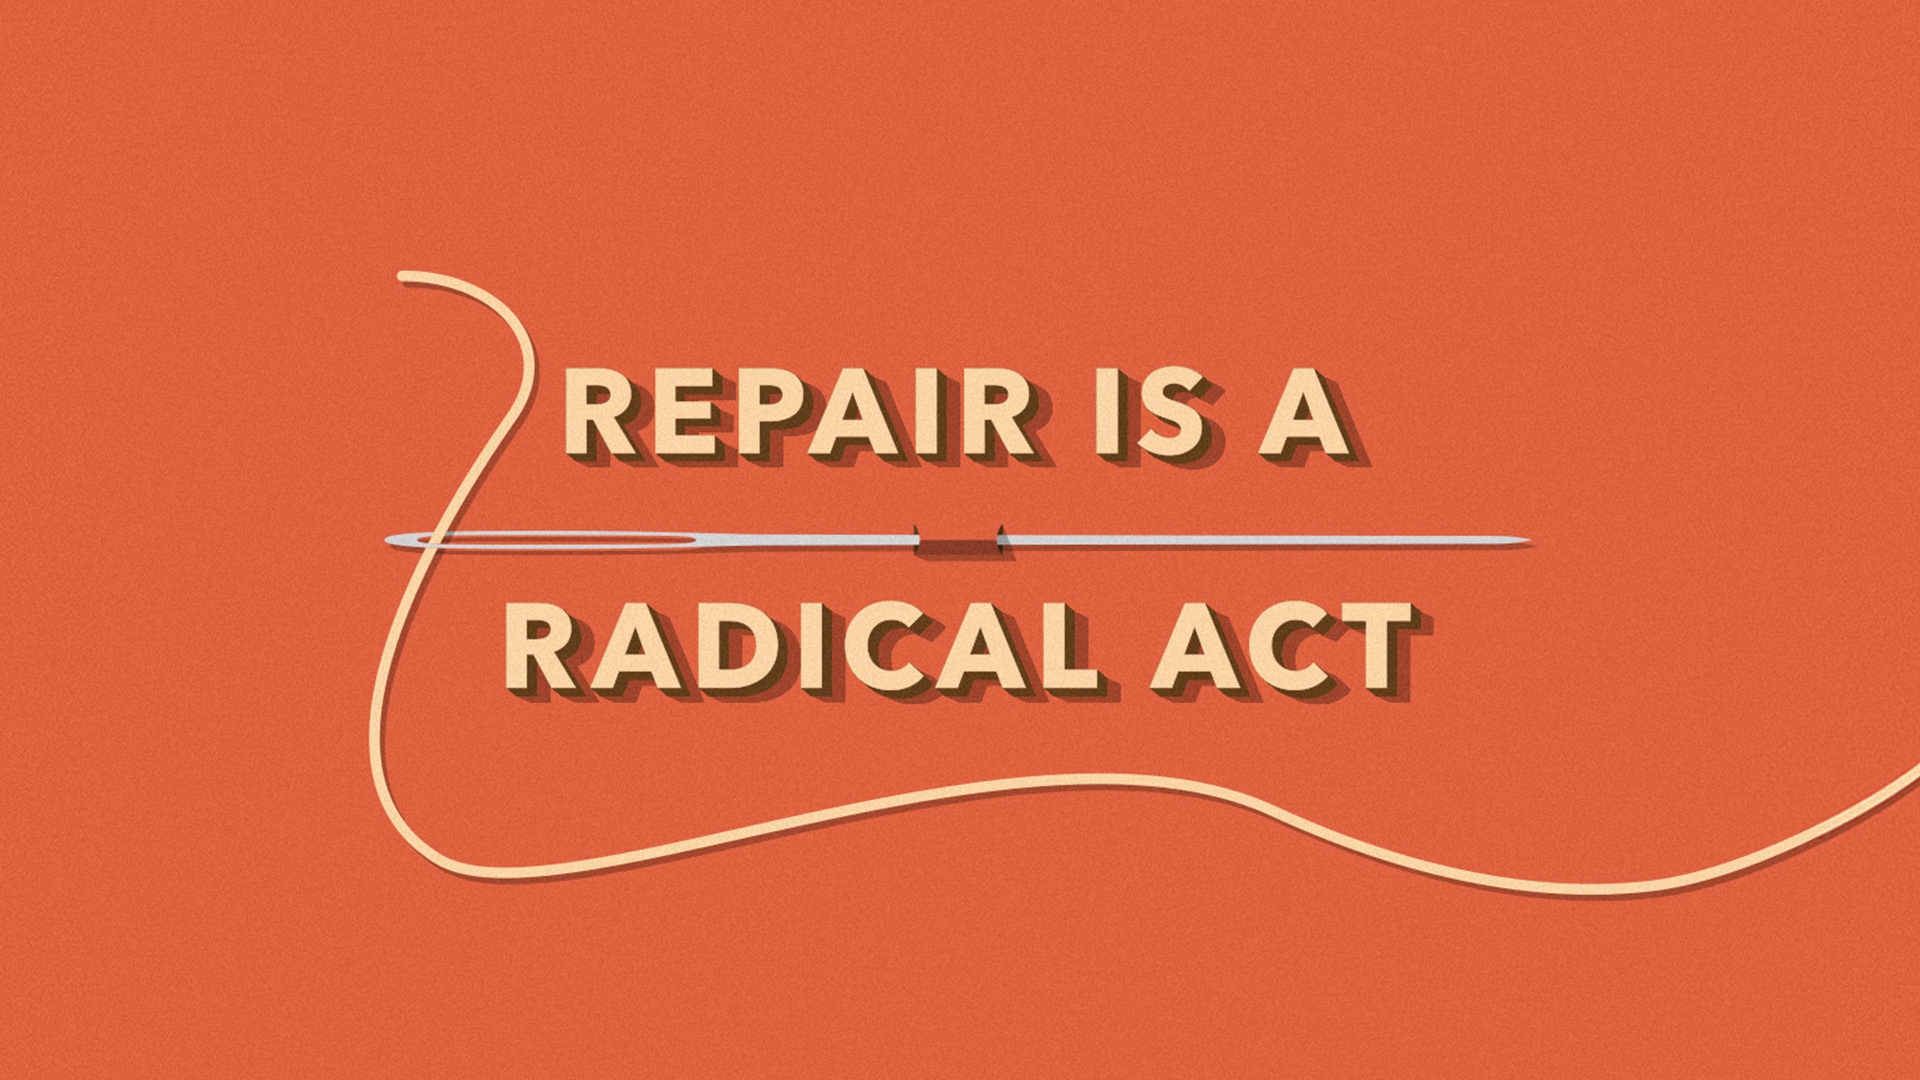 Repair is a radical act